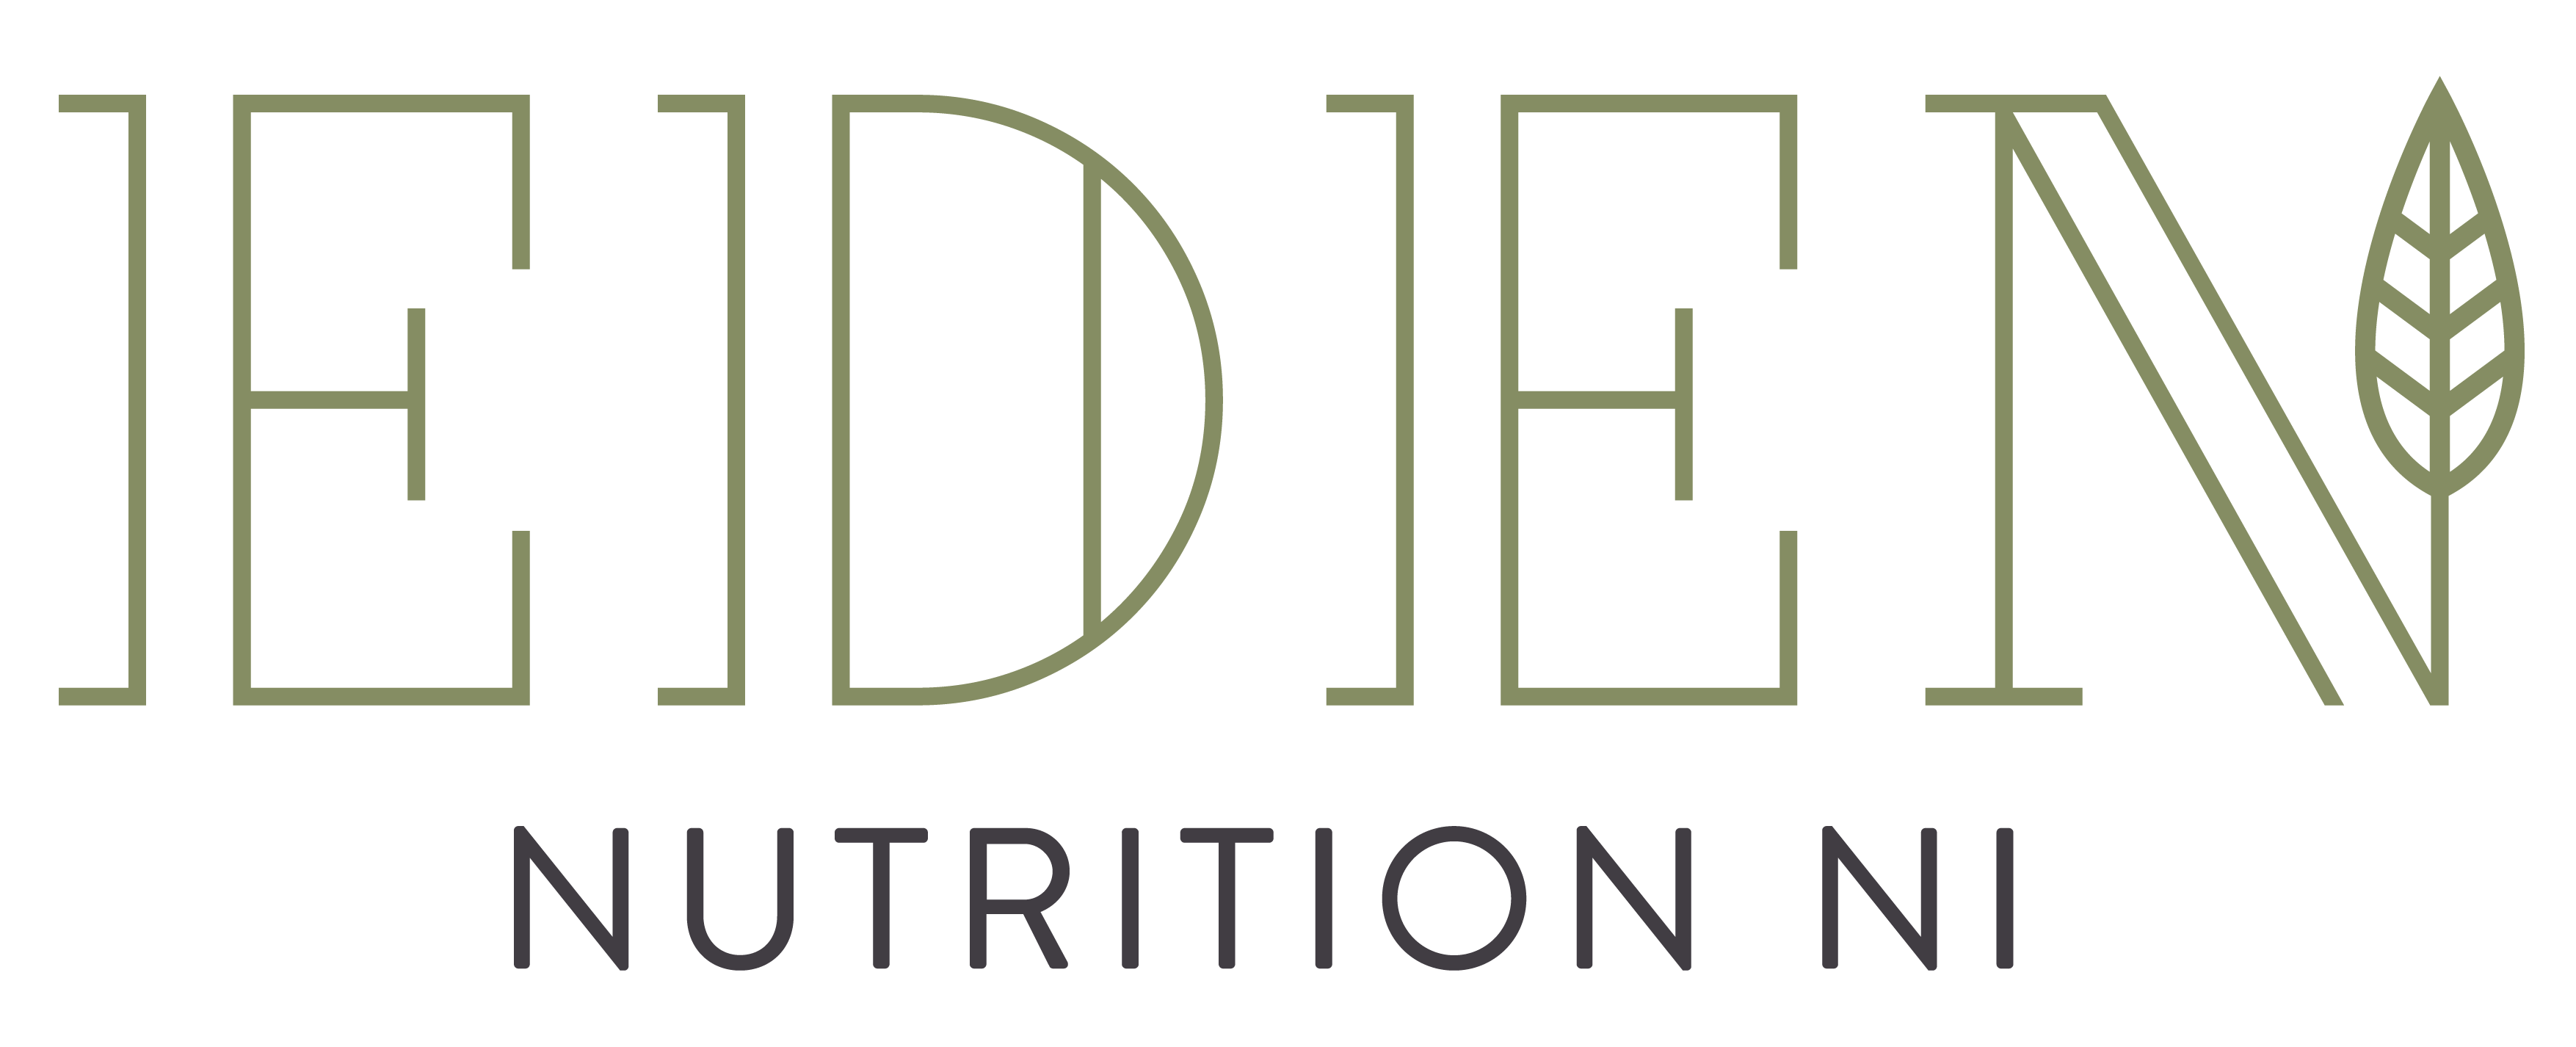 Eden Nutrition LOGO COLOUR